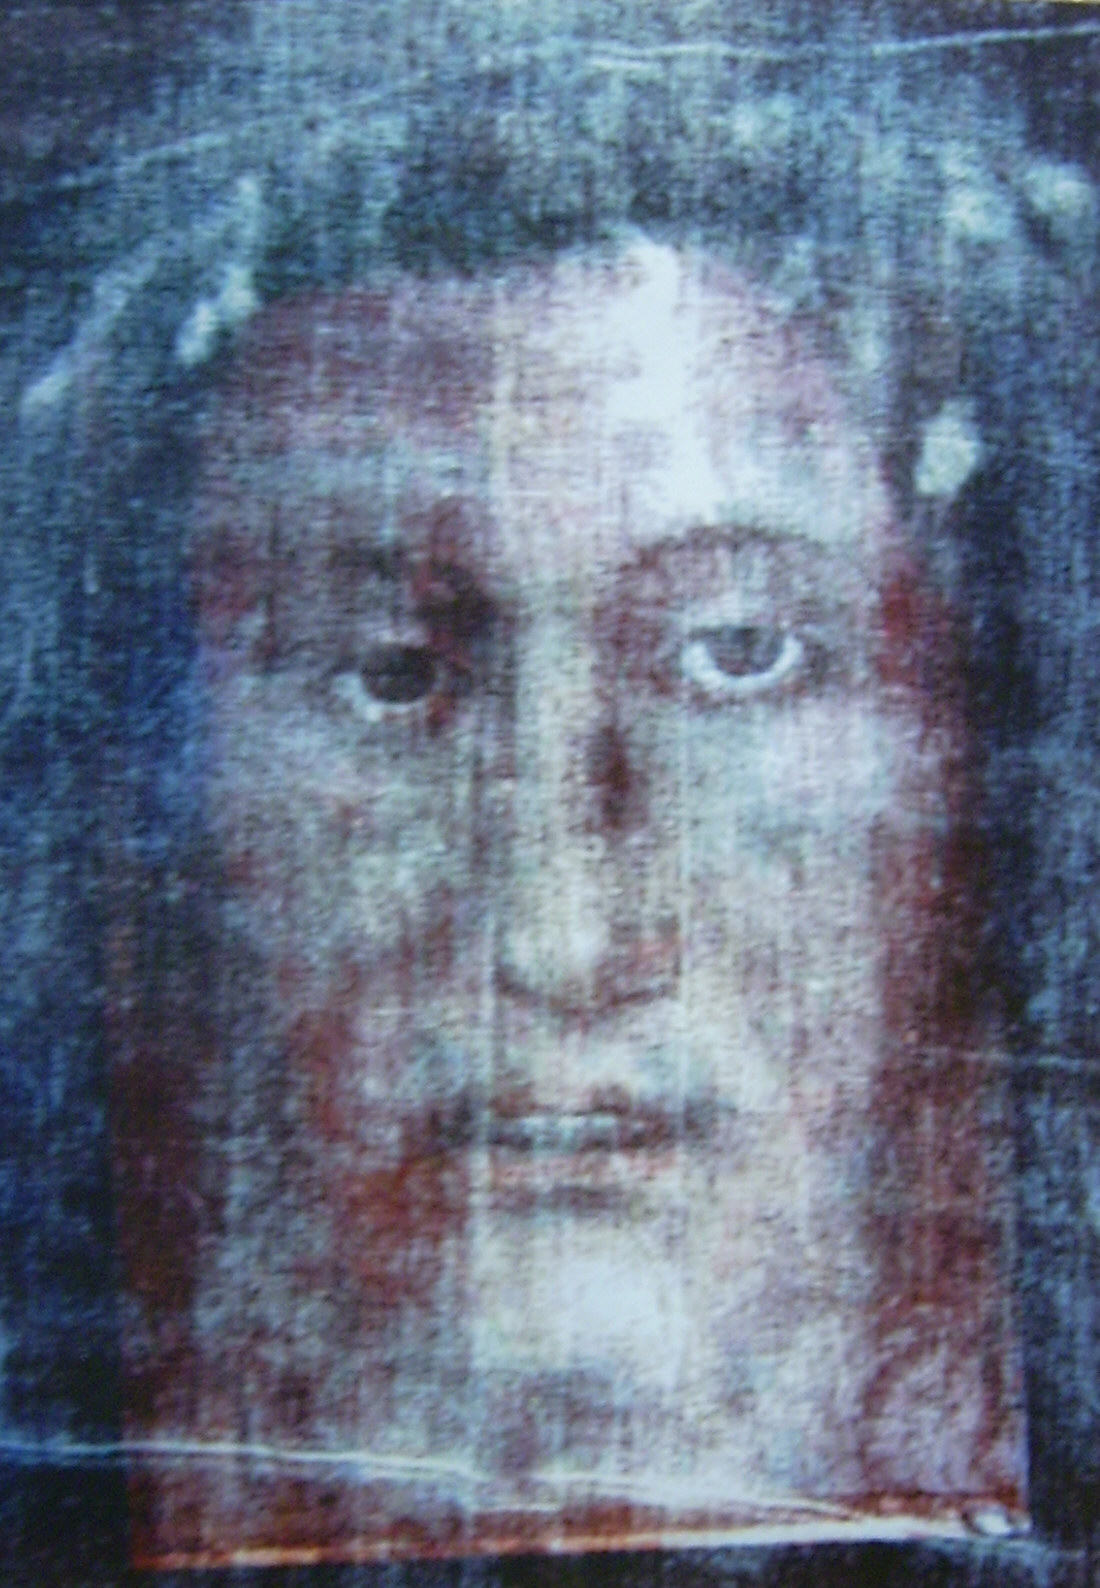 Recently in Italy a scientist has reproduced the SHROUD OF TURIN ...